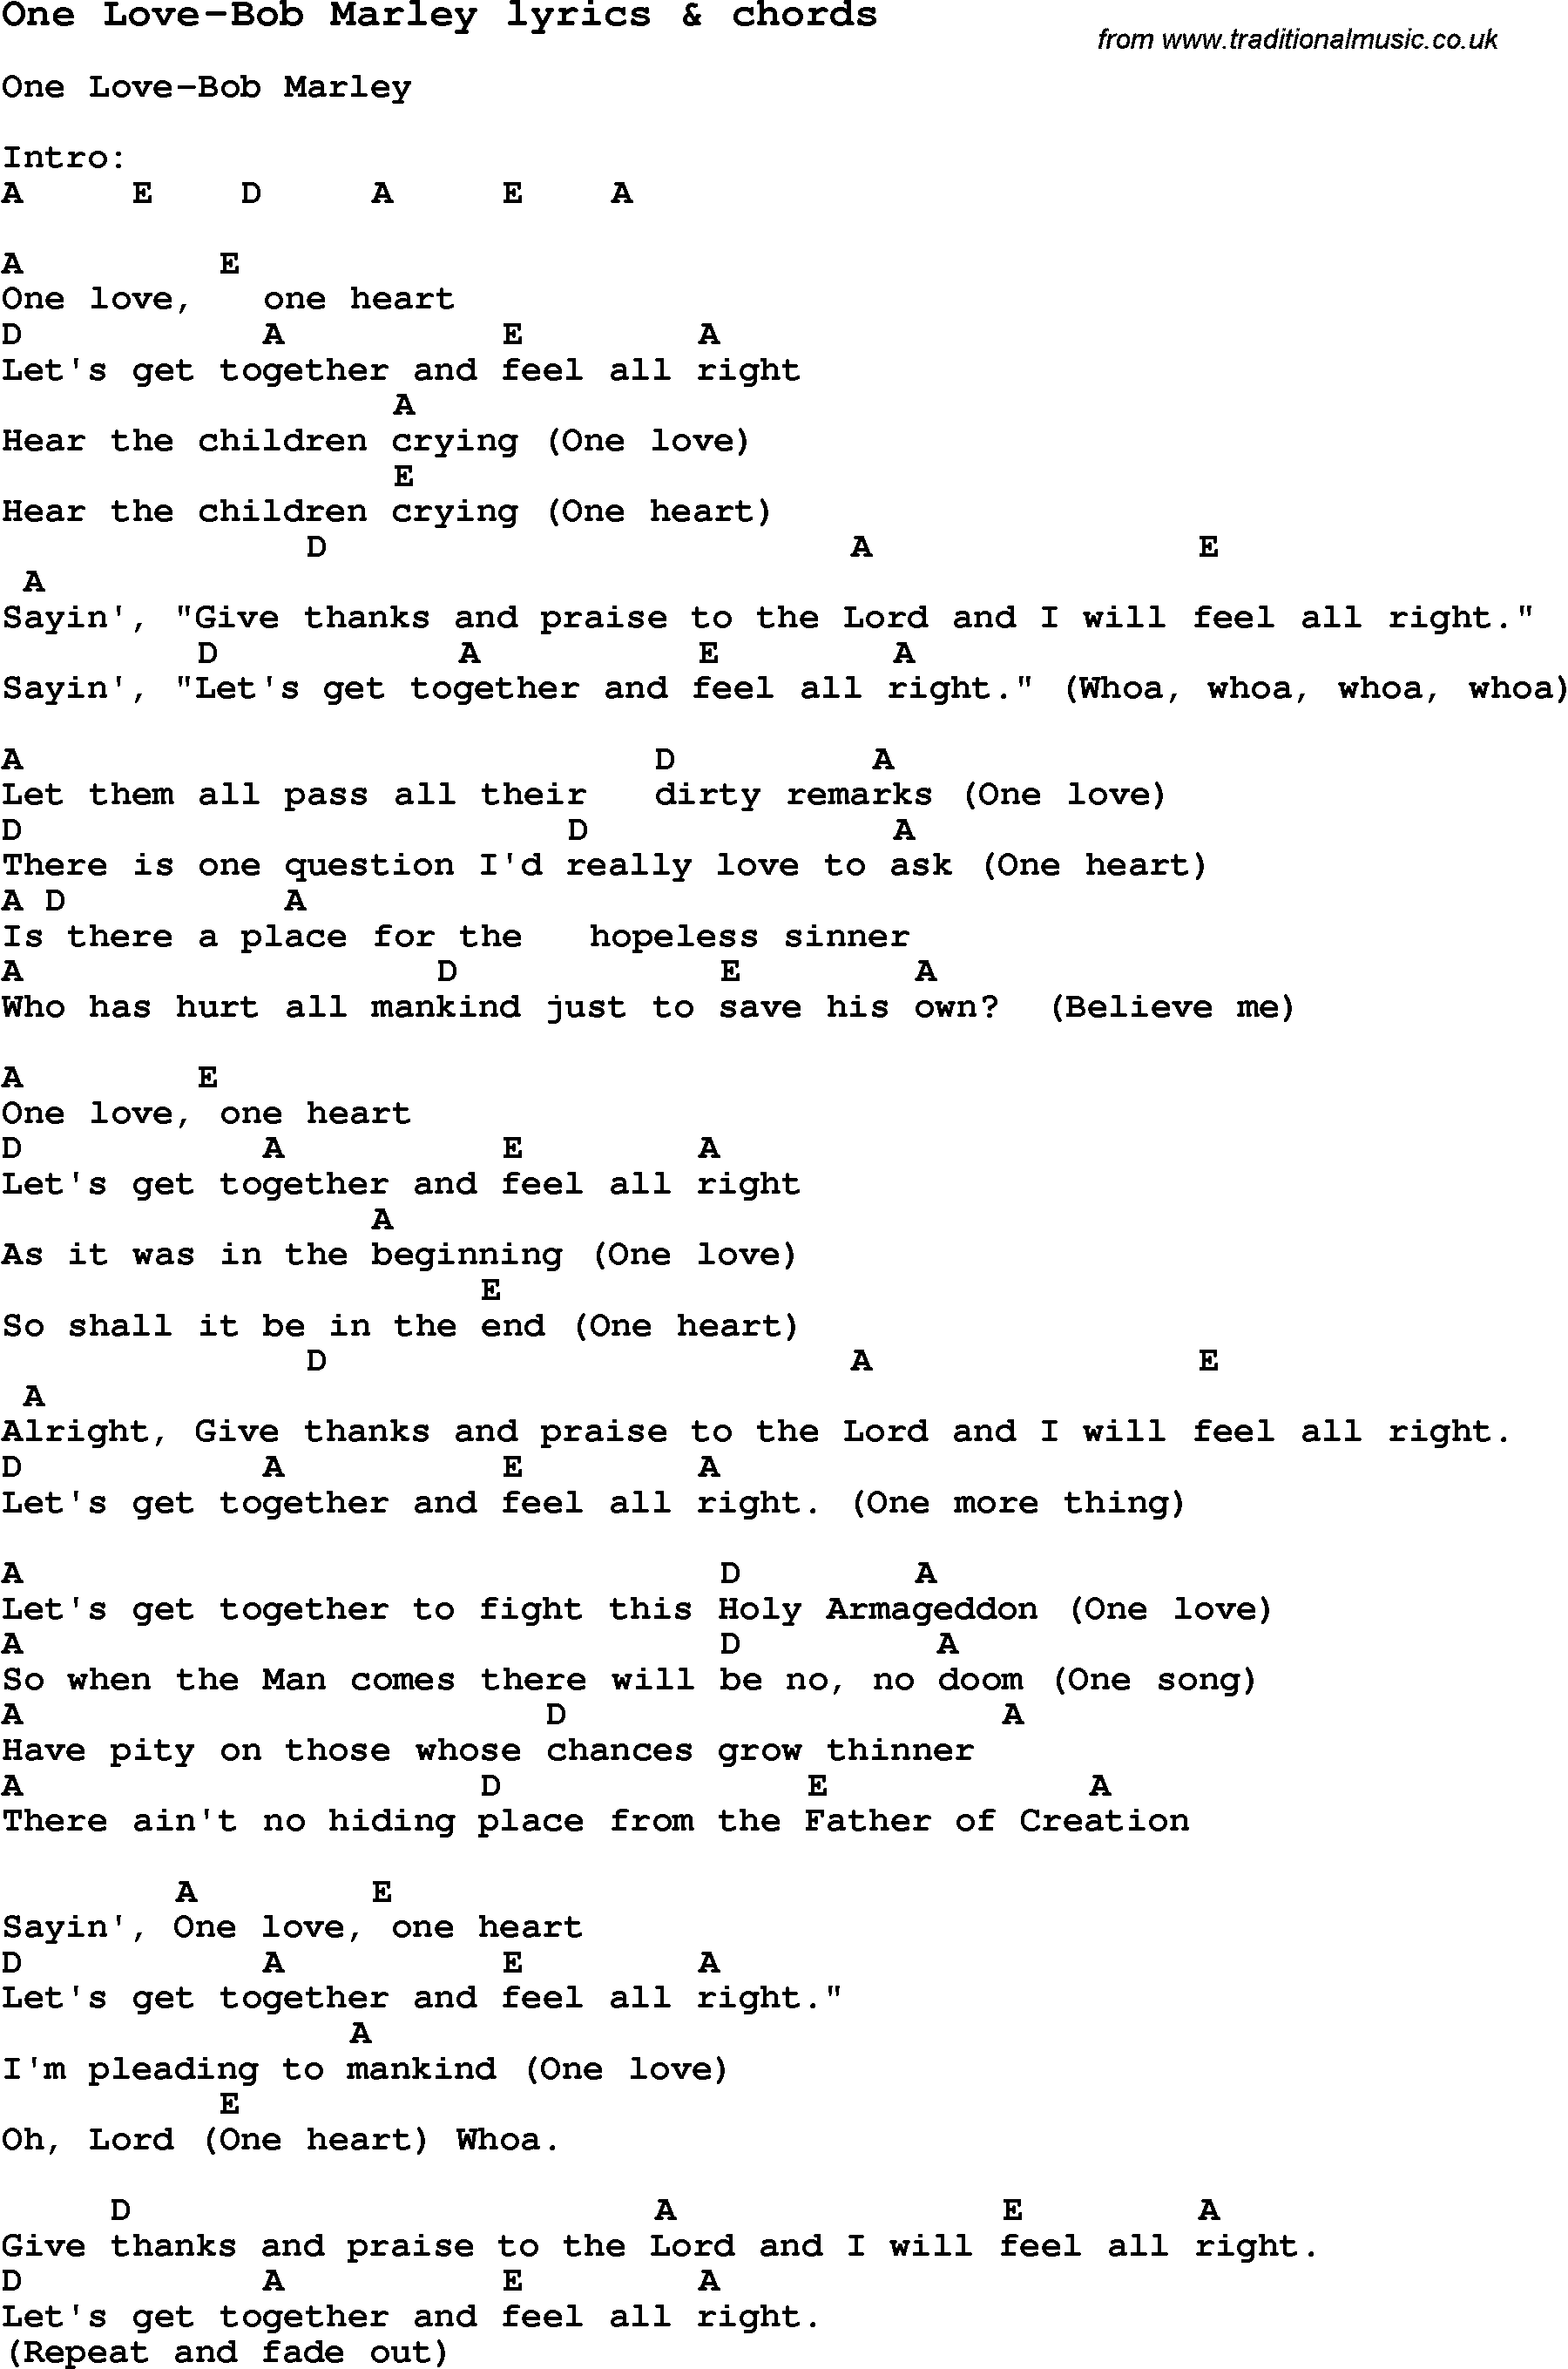 Love Song Lyrics For One Love Bob Marley With Chords For Ukulele